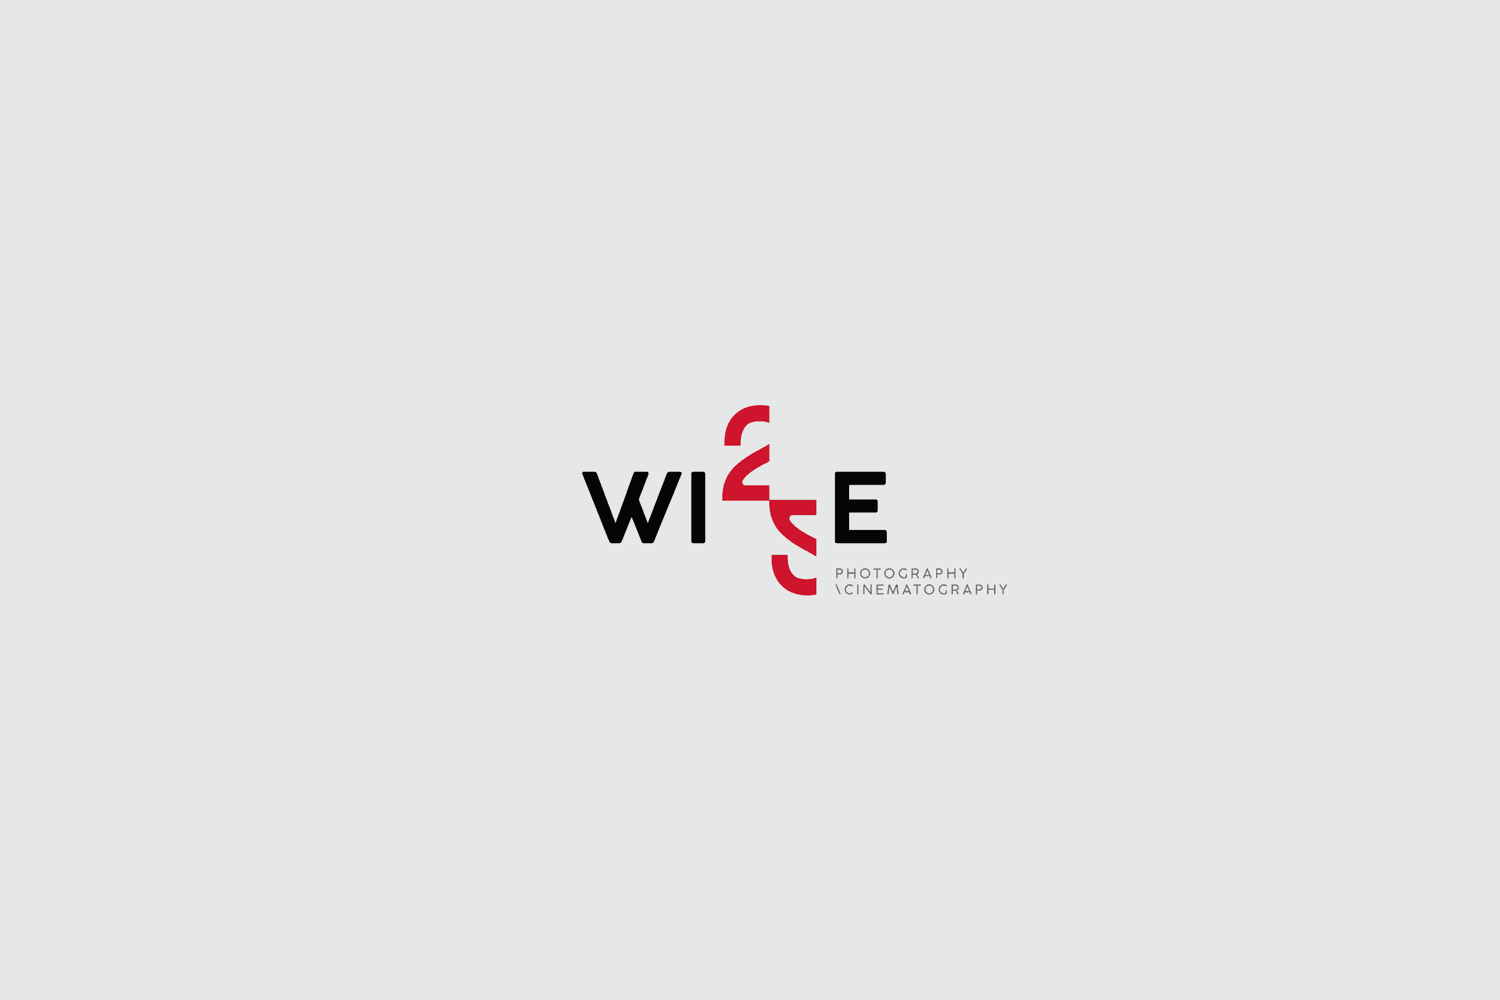 Branding Project, Naming and Logo for a Photography and Cinematography Studio